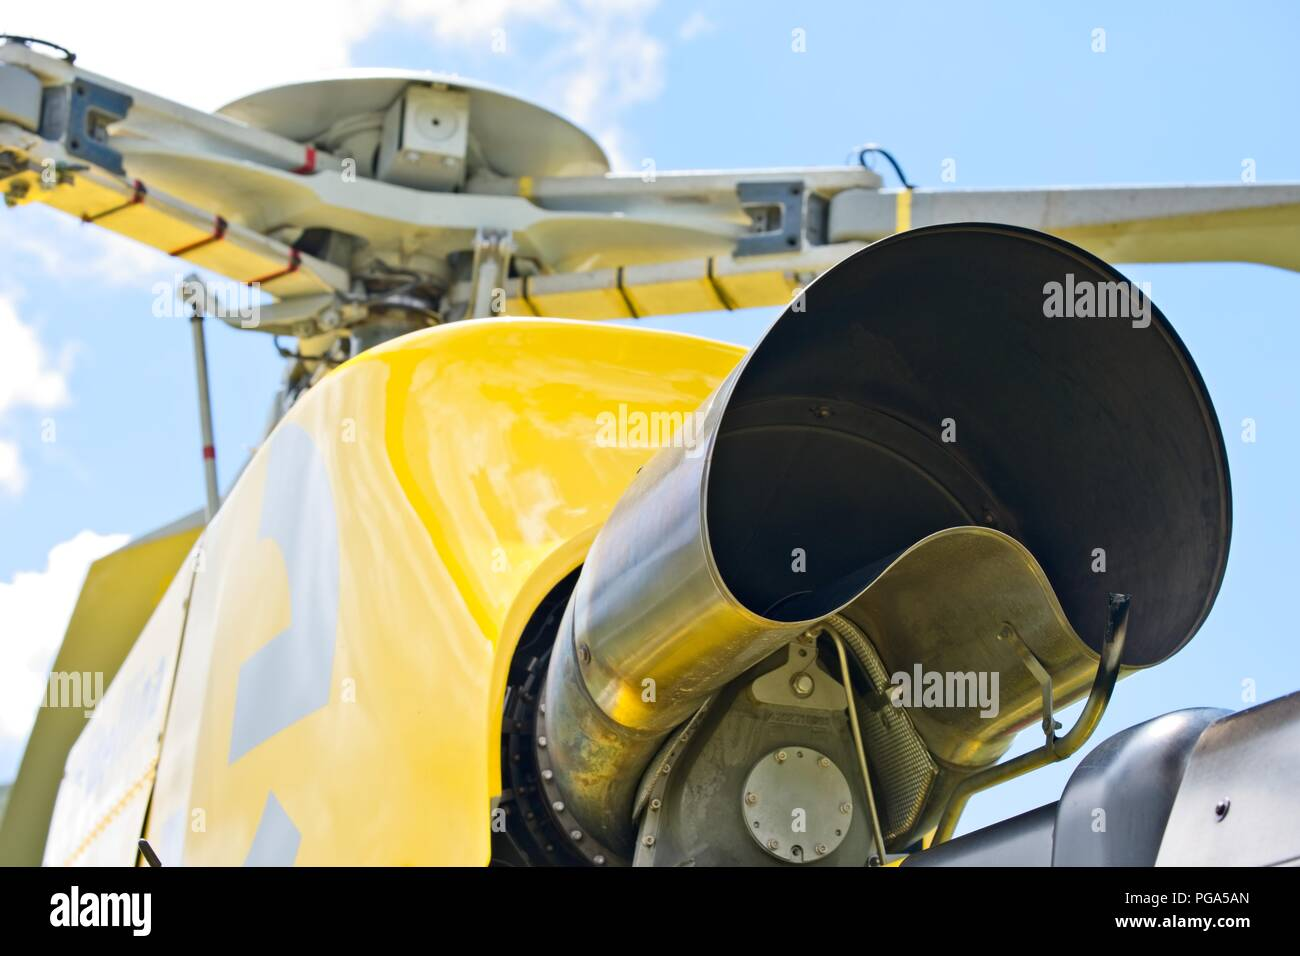 Yellow helicopter close up on the rotors. Air Vehicle, Built Structure, Gold, Helicopter, Manufactured Object - Stock Image